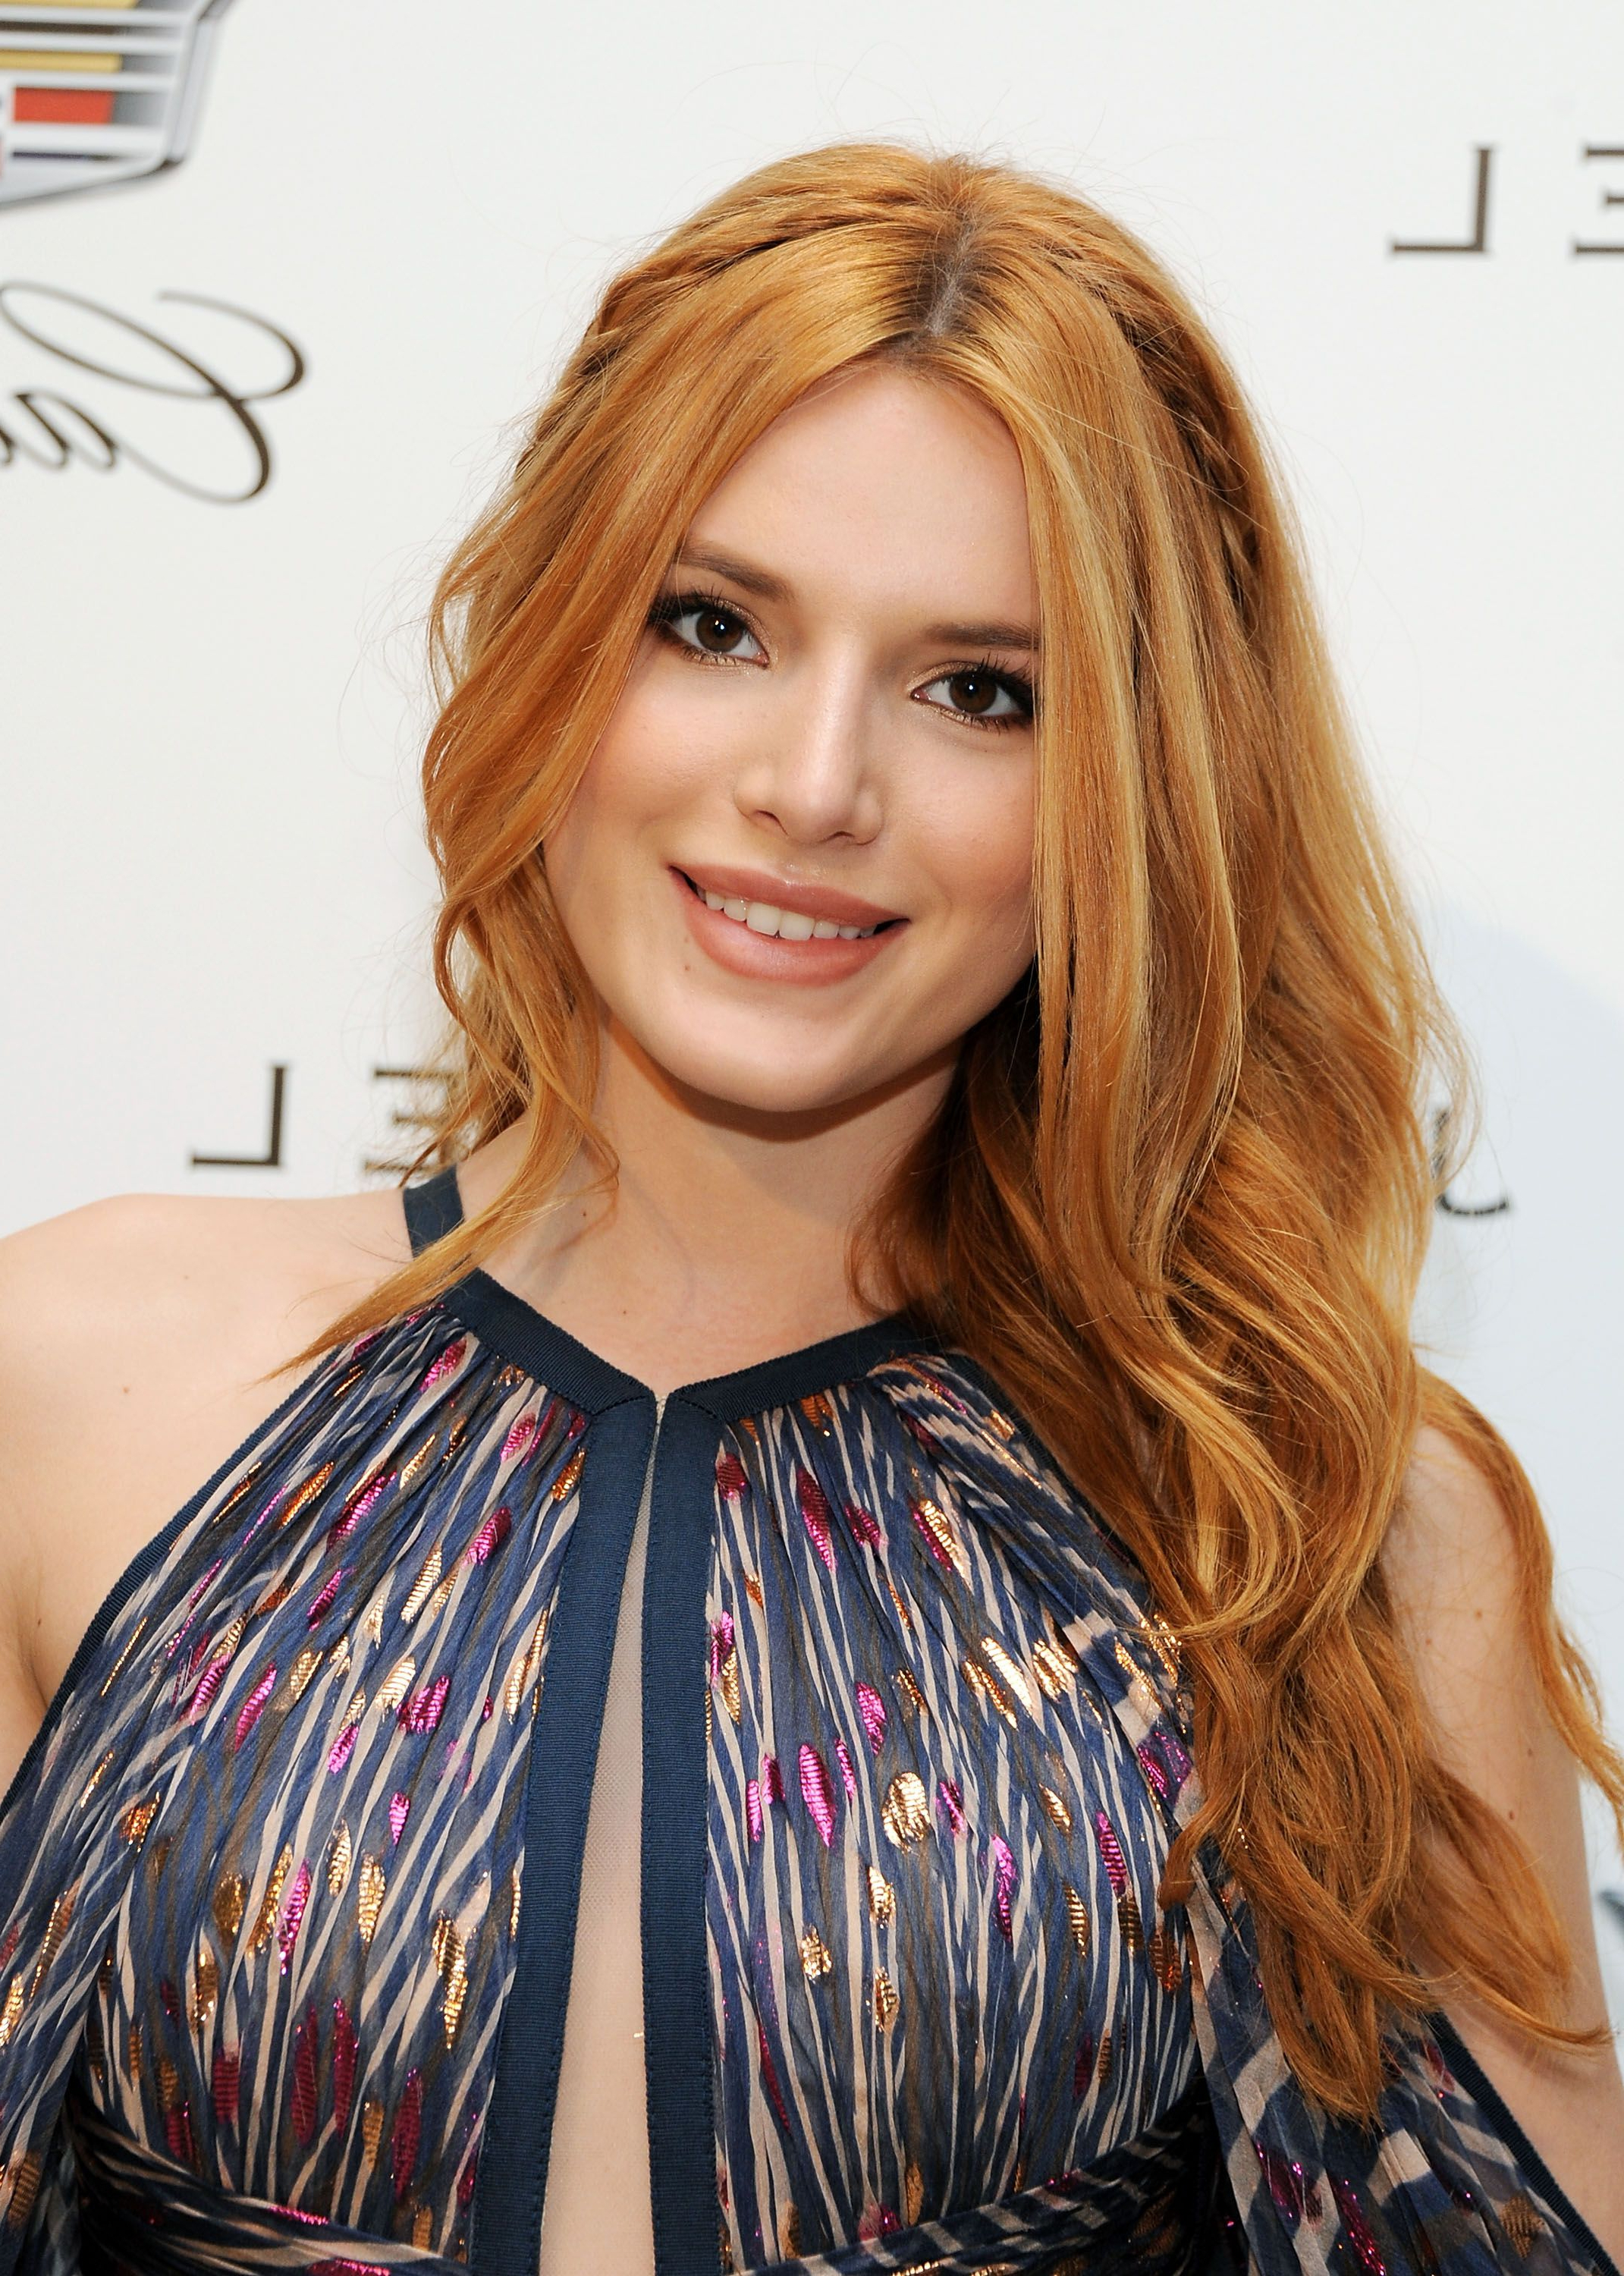 Famous Two Tier Caramel Blonde Lob Hairstyles For 26 Gorgeous Strawberry Blonde Hair Color Ideas From Celebrities For (View 20 of 20)